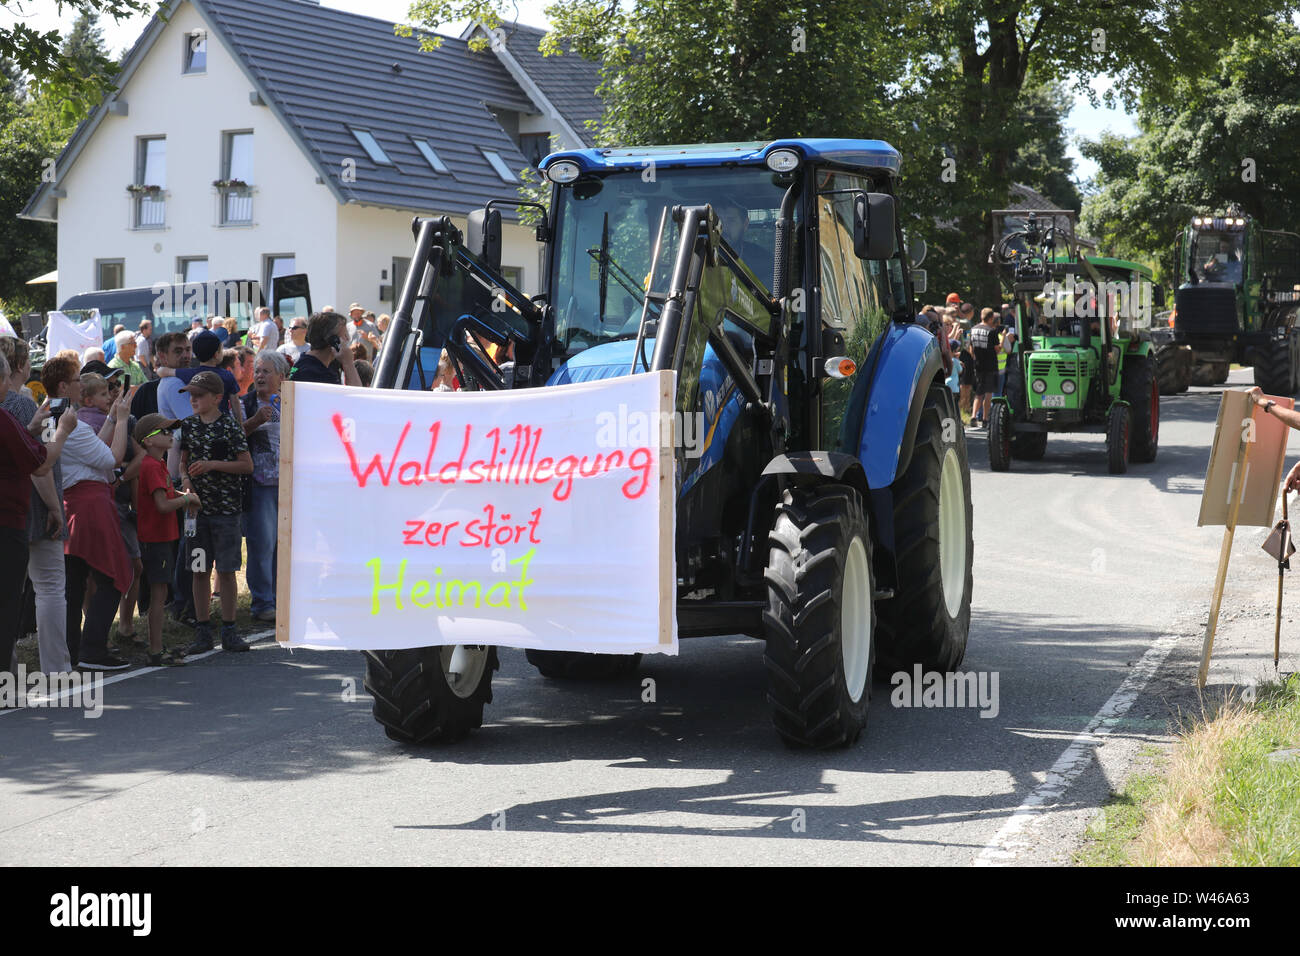 20 July 2019, Thuringia, Wurzbach-Rodacherbrunn: A participant of a protest action against forest decommissioning in the Wurzbach area drives with his tractor during a demonstration drive. In the forest areas around Rodacherbrunn, a 1400 hectare spruce forest is to be abandoned for forestry purposes. The organizers of the action fear that this would sacrifice the forest to the bark beetle. Photo: Bodo Schackow/dpa-Zentralbild/dpa - Stock Image